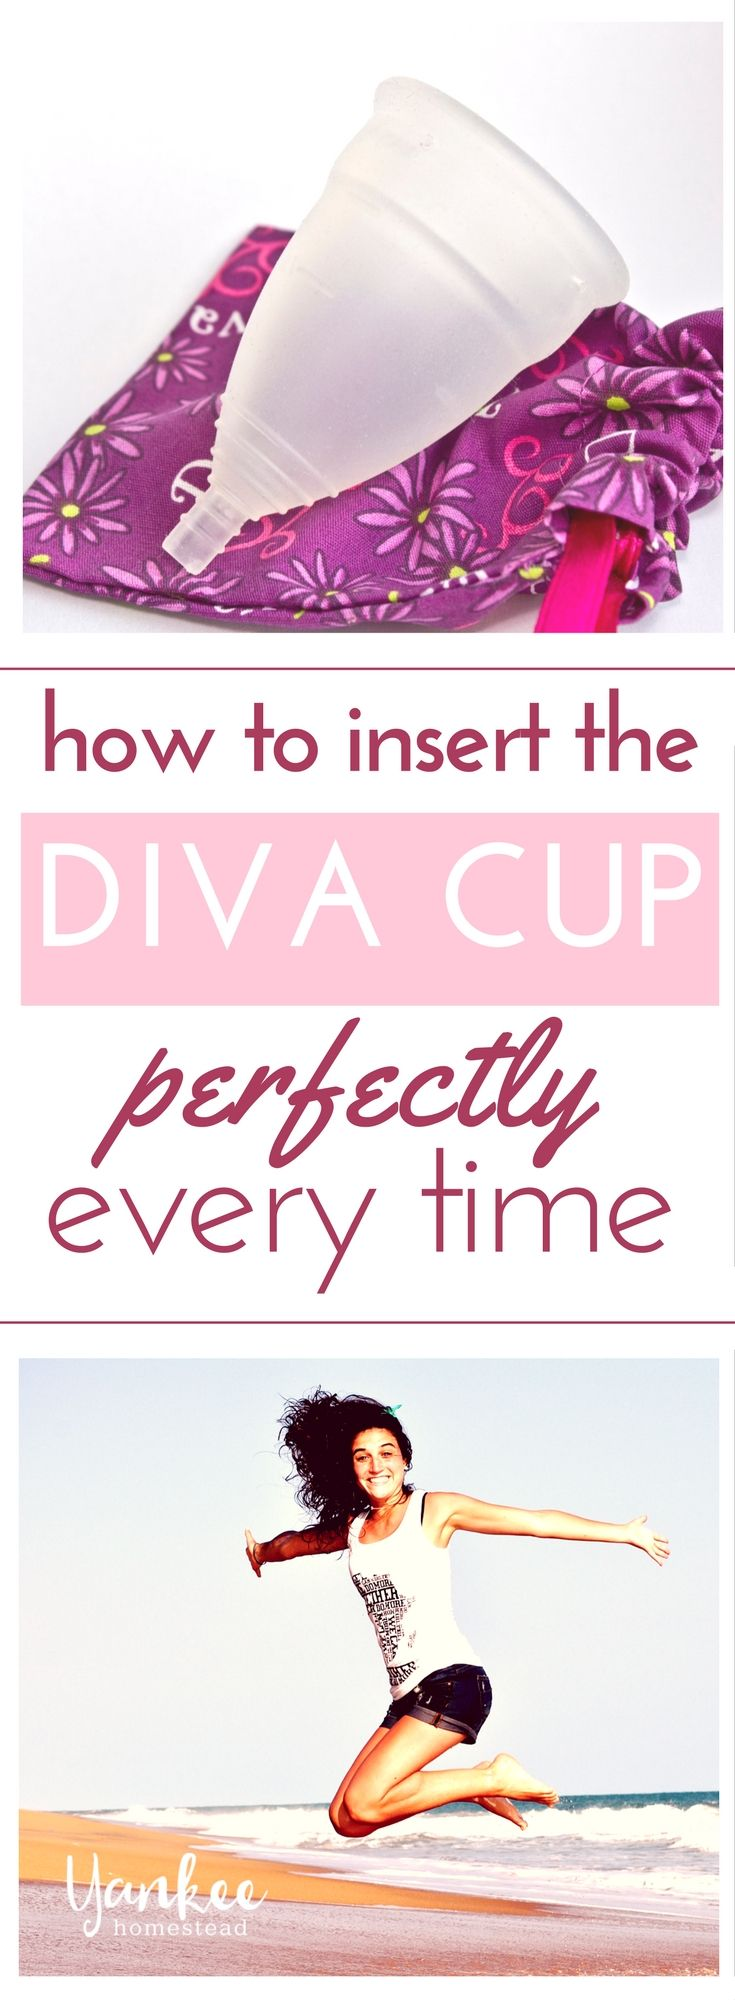 How to Insert the Diva Cup Perfectly Every Time | Yankee Homestead